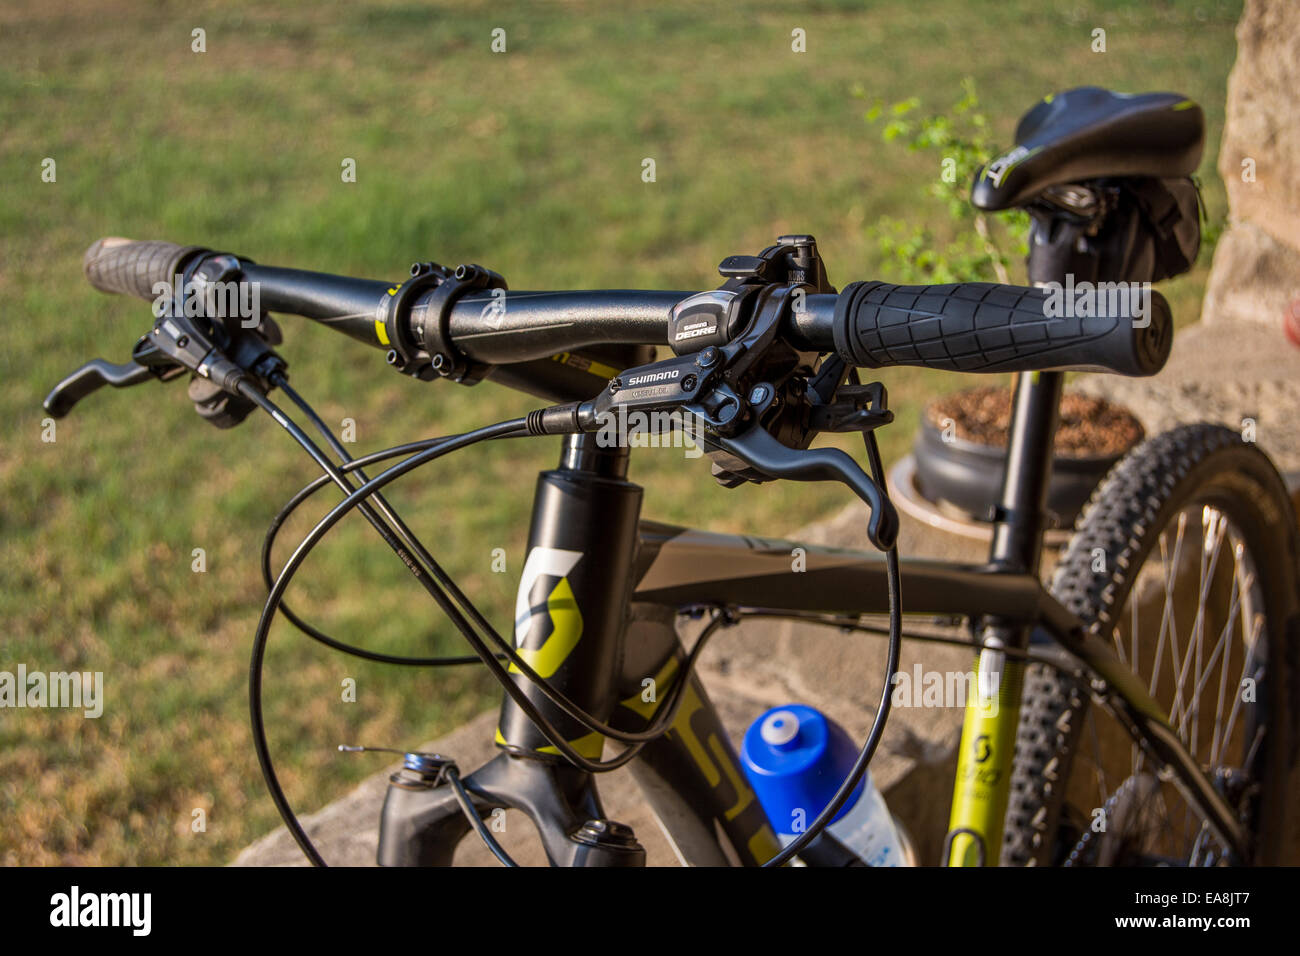 Close up of the handlebars of a mountain bike - Stock Image